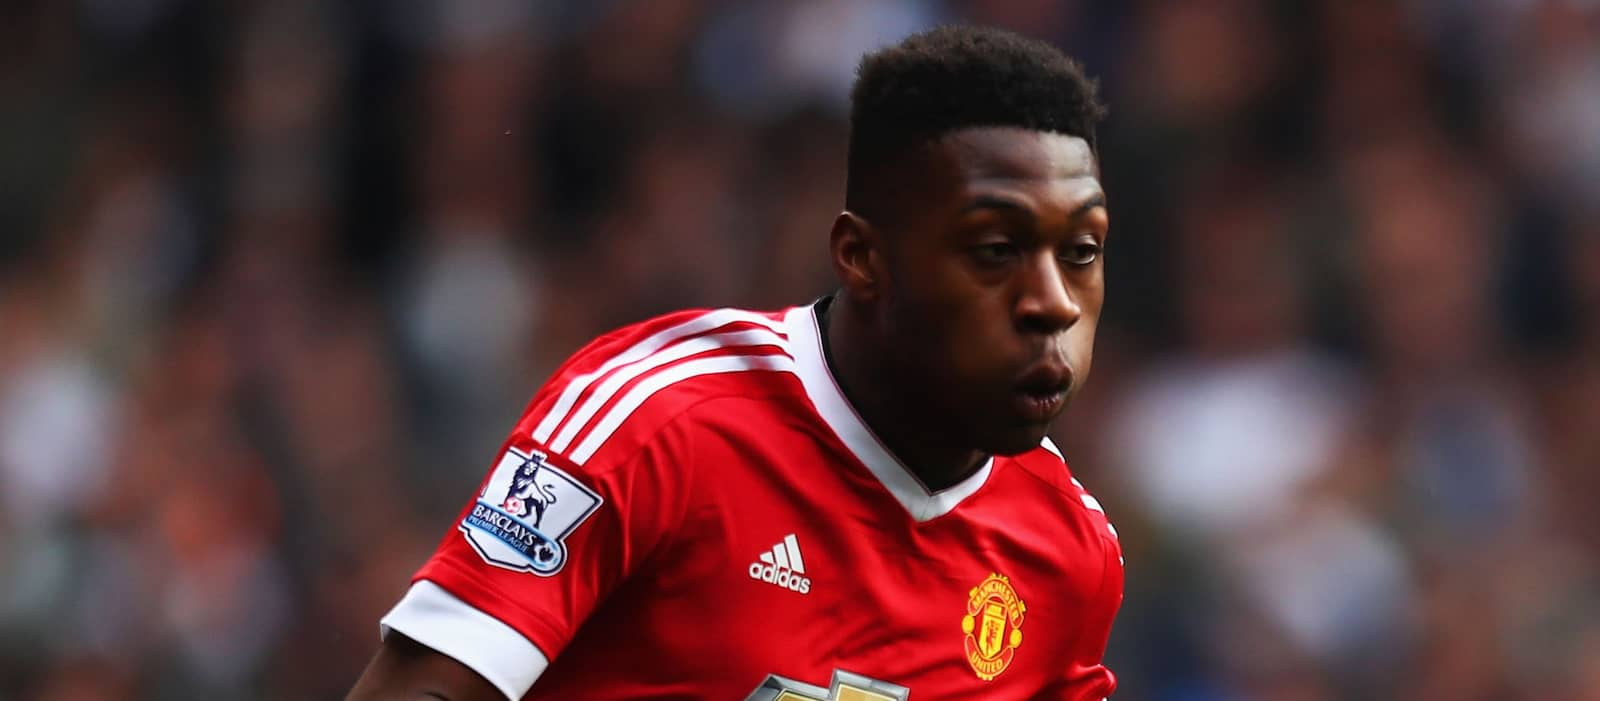 Timothy Fosu-Mensah is ready for his chance to shine at Manchester United